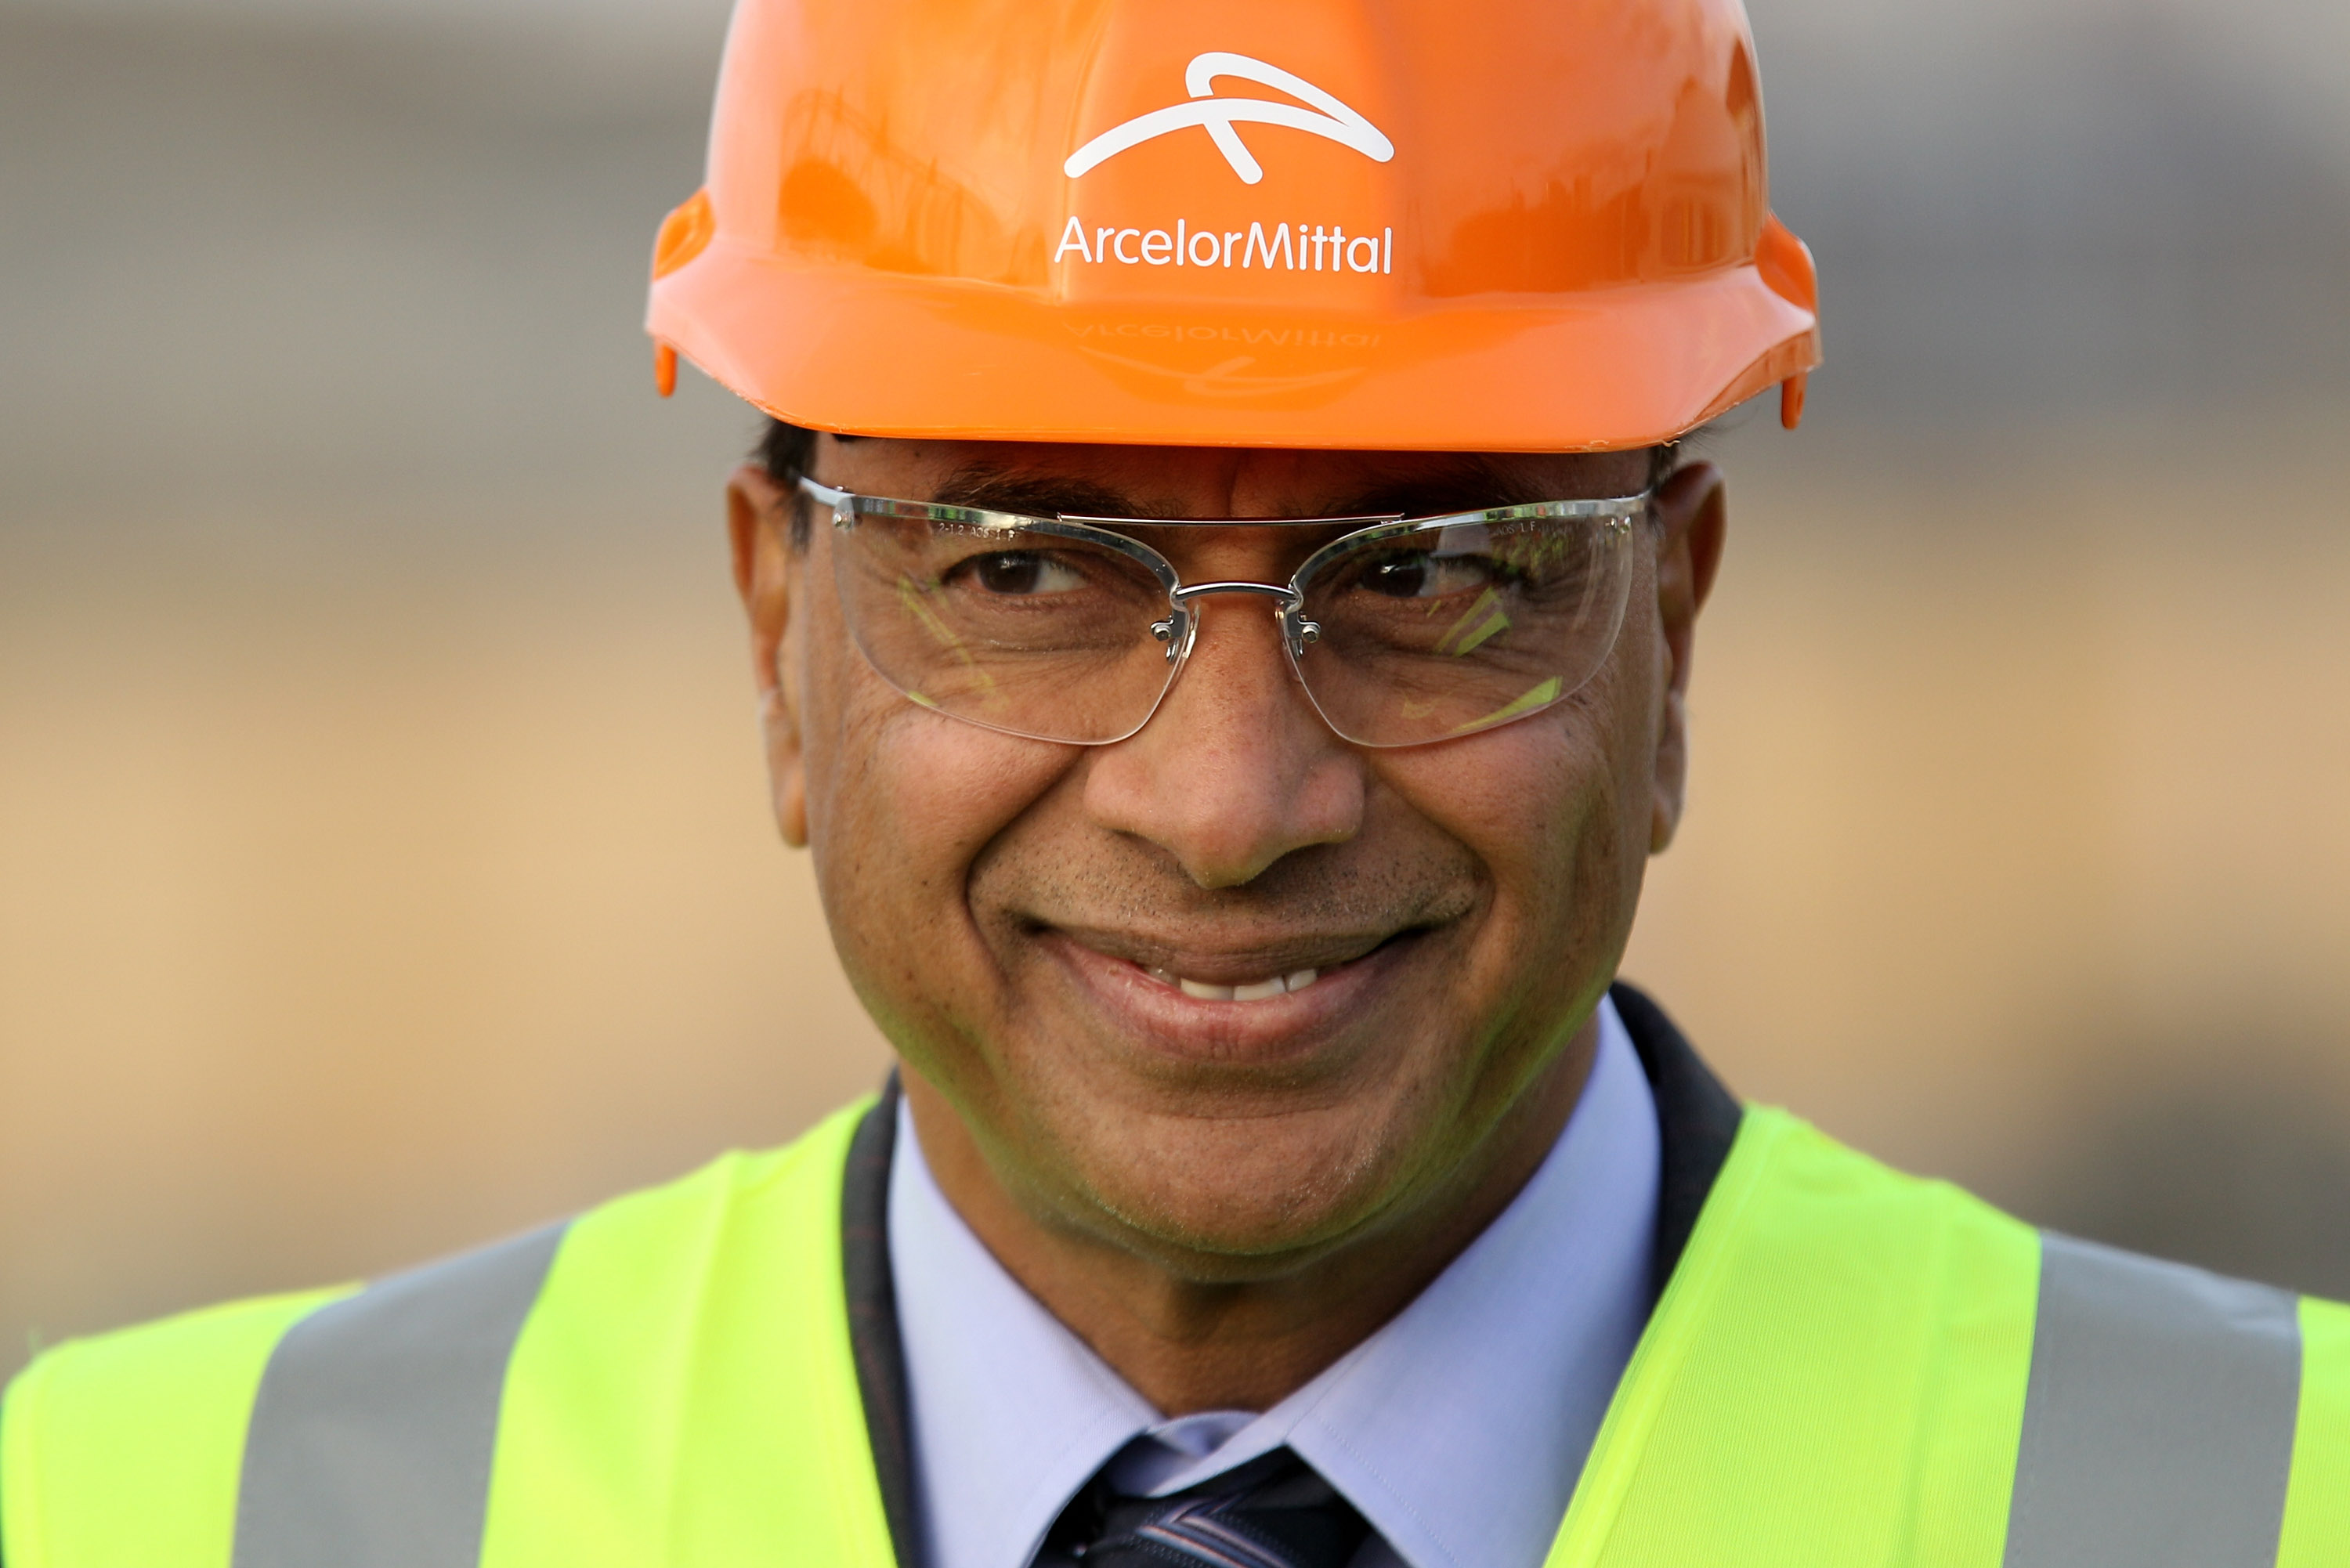 At Oxford, the post of professor of vaccinology, currently held by Prof Adrian Hill, is being renamed the Lakshmi Mittal and Family Professorship of Vaccinology, after receiving a £3.5-million donation from the steel tycoon (Photo: Oli Scarff/Getty Images).